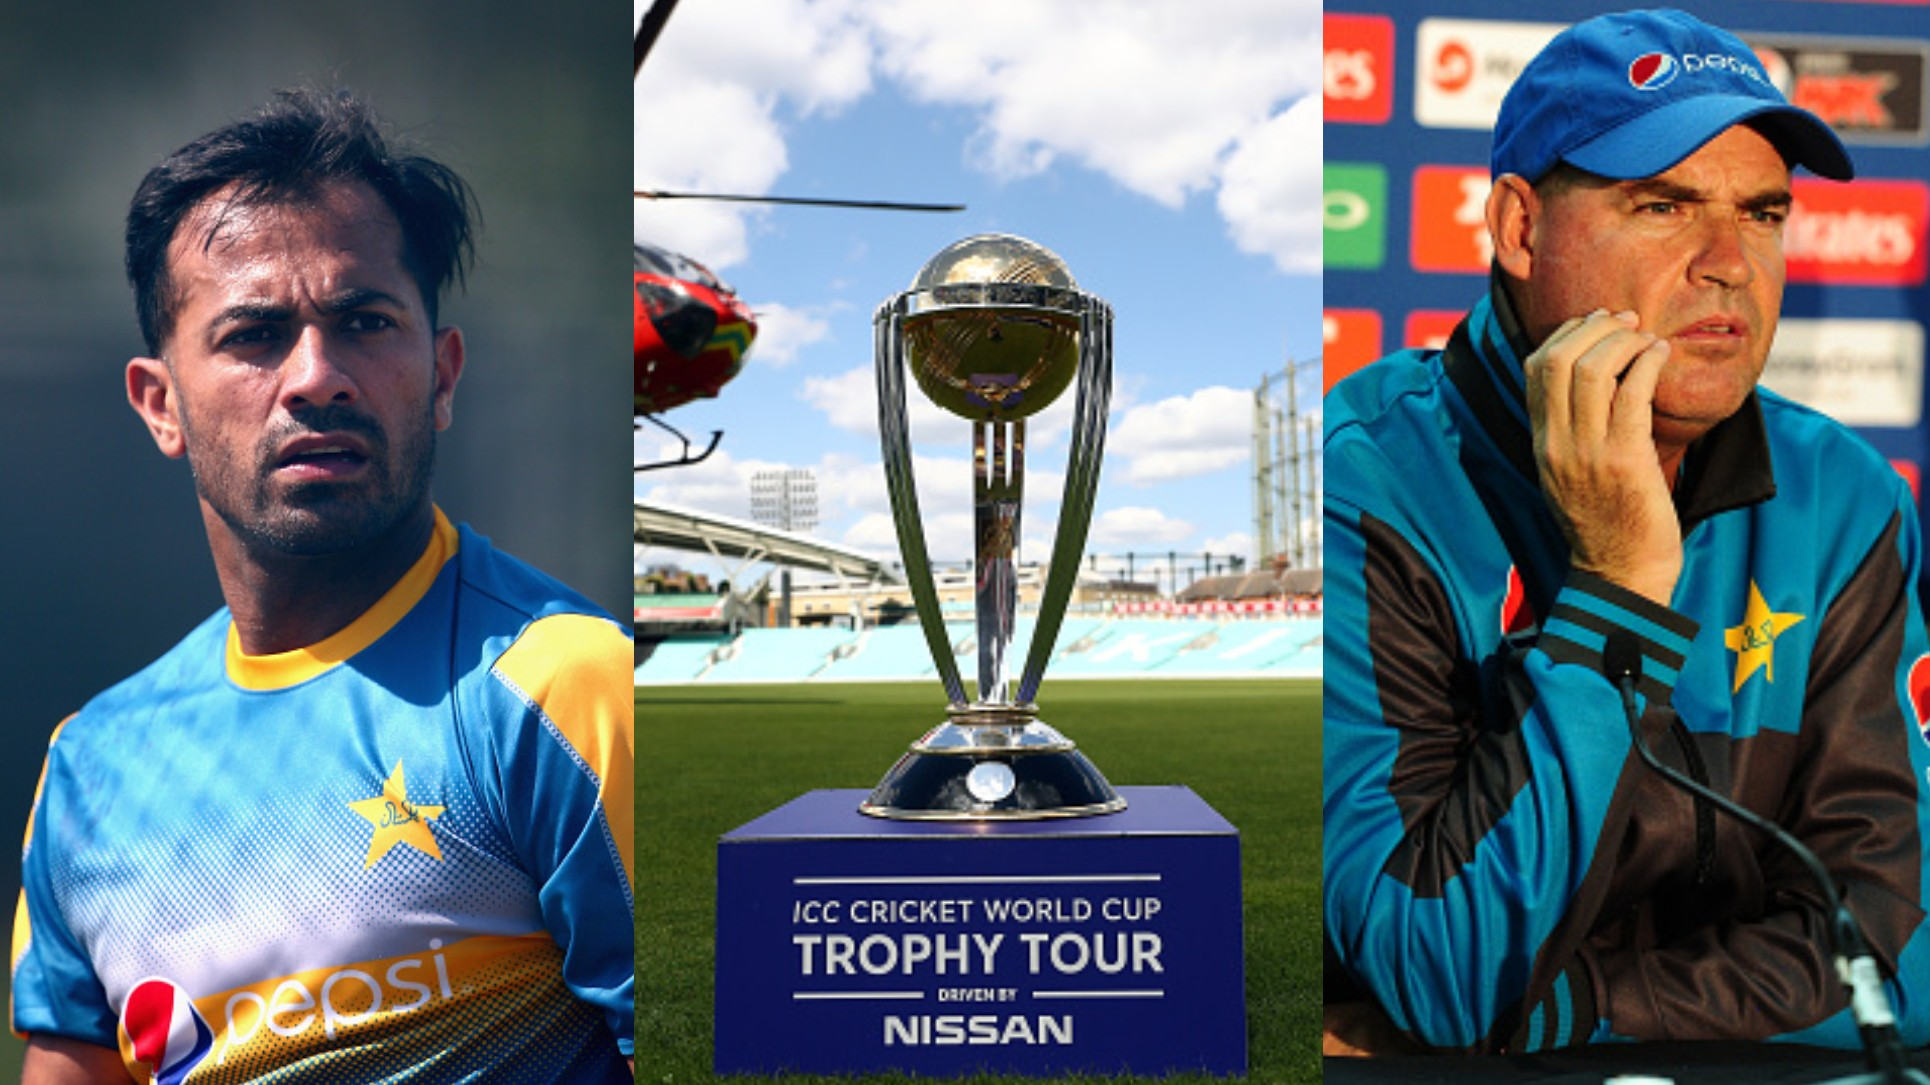 CWC 2019: Wahab Riaz determined to prove coach Mickey Arthur wrong in the World Cup